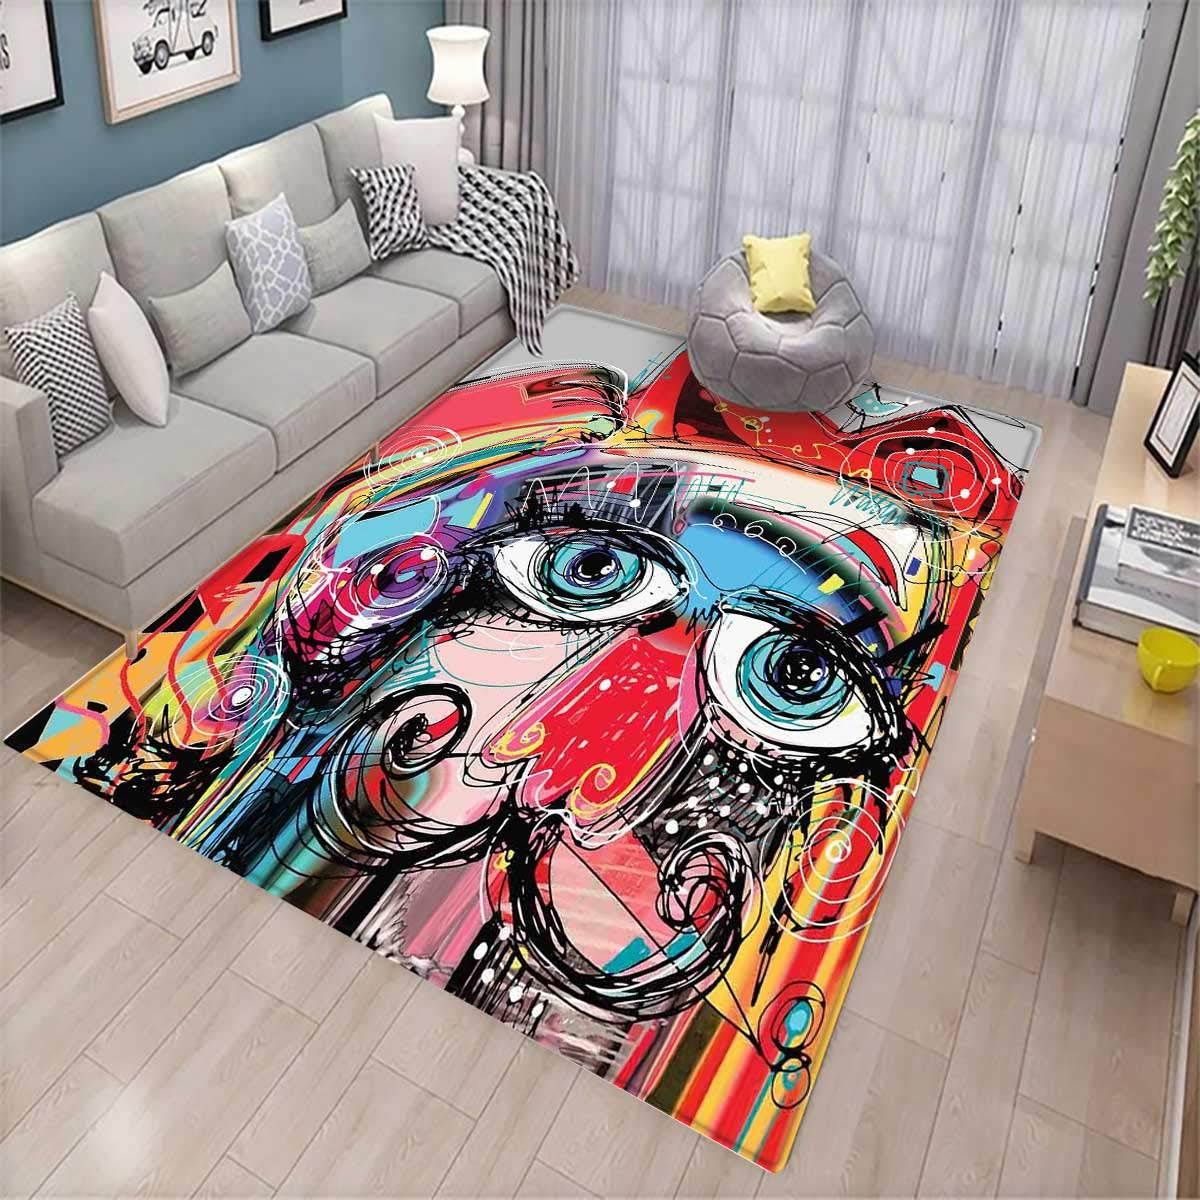 Art Anti-Static Area Rugs Grafitti Like Sketchy Style Colorful Painting with Human Like Face Dog Animal Image Children Kids Nursery Rugs Floor Carpet Multi Colored